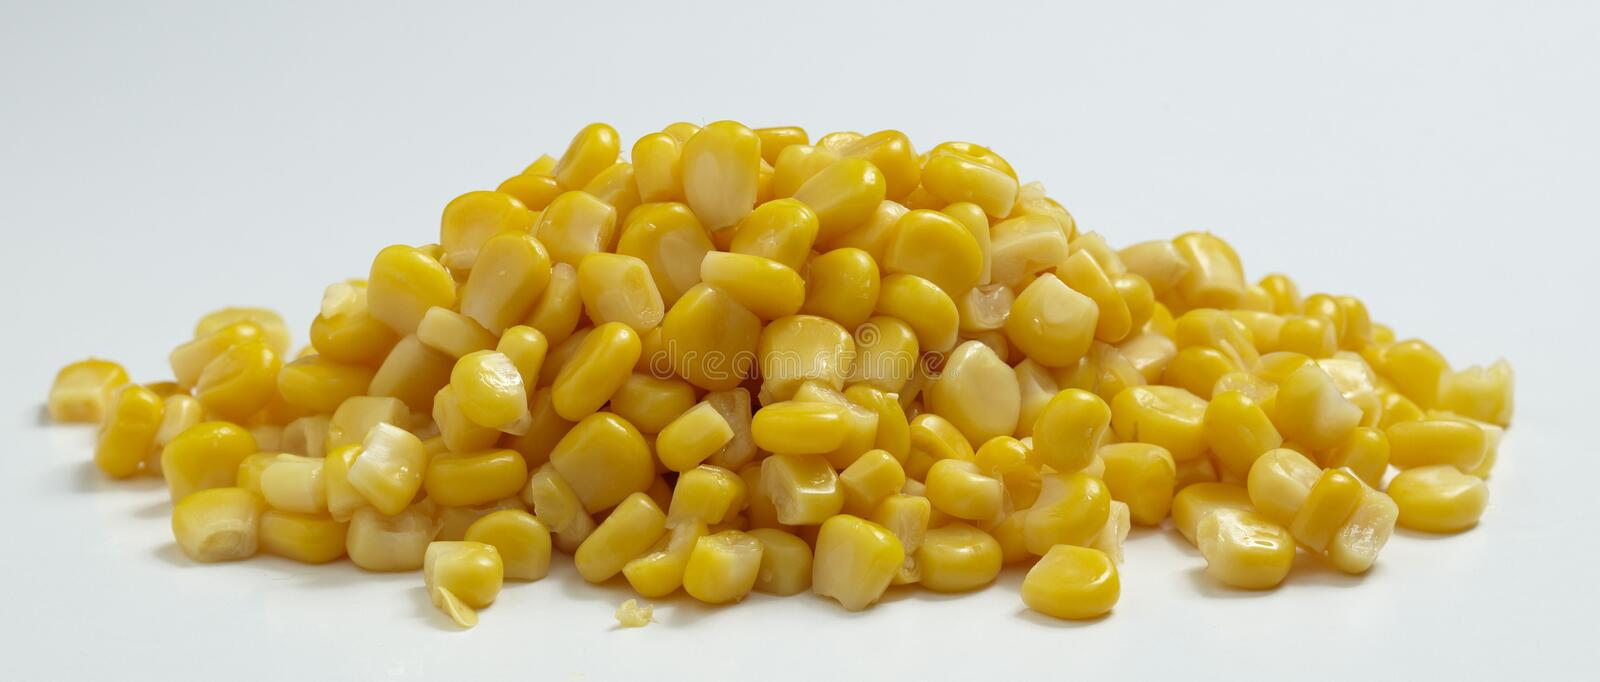 Download Corn stock image. Image of grain, maze, food, agriculture - 17259713